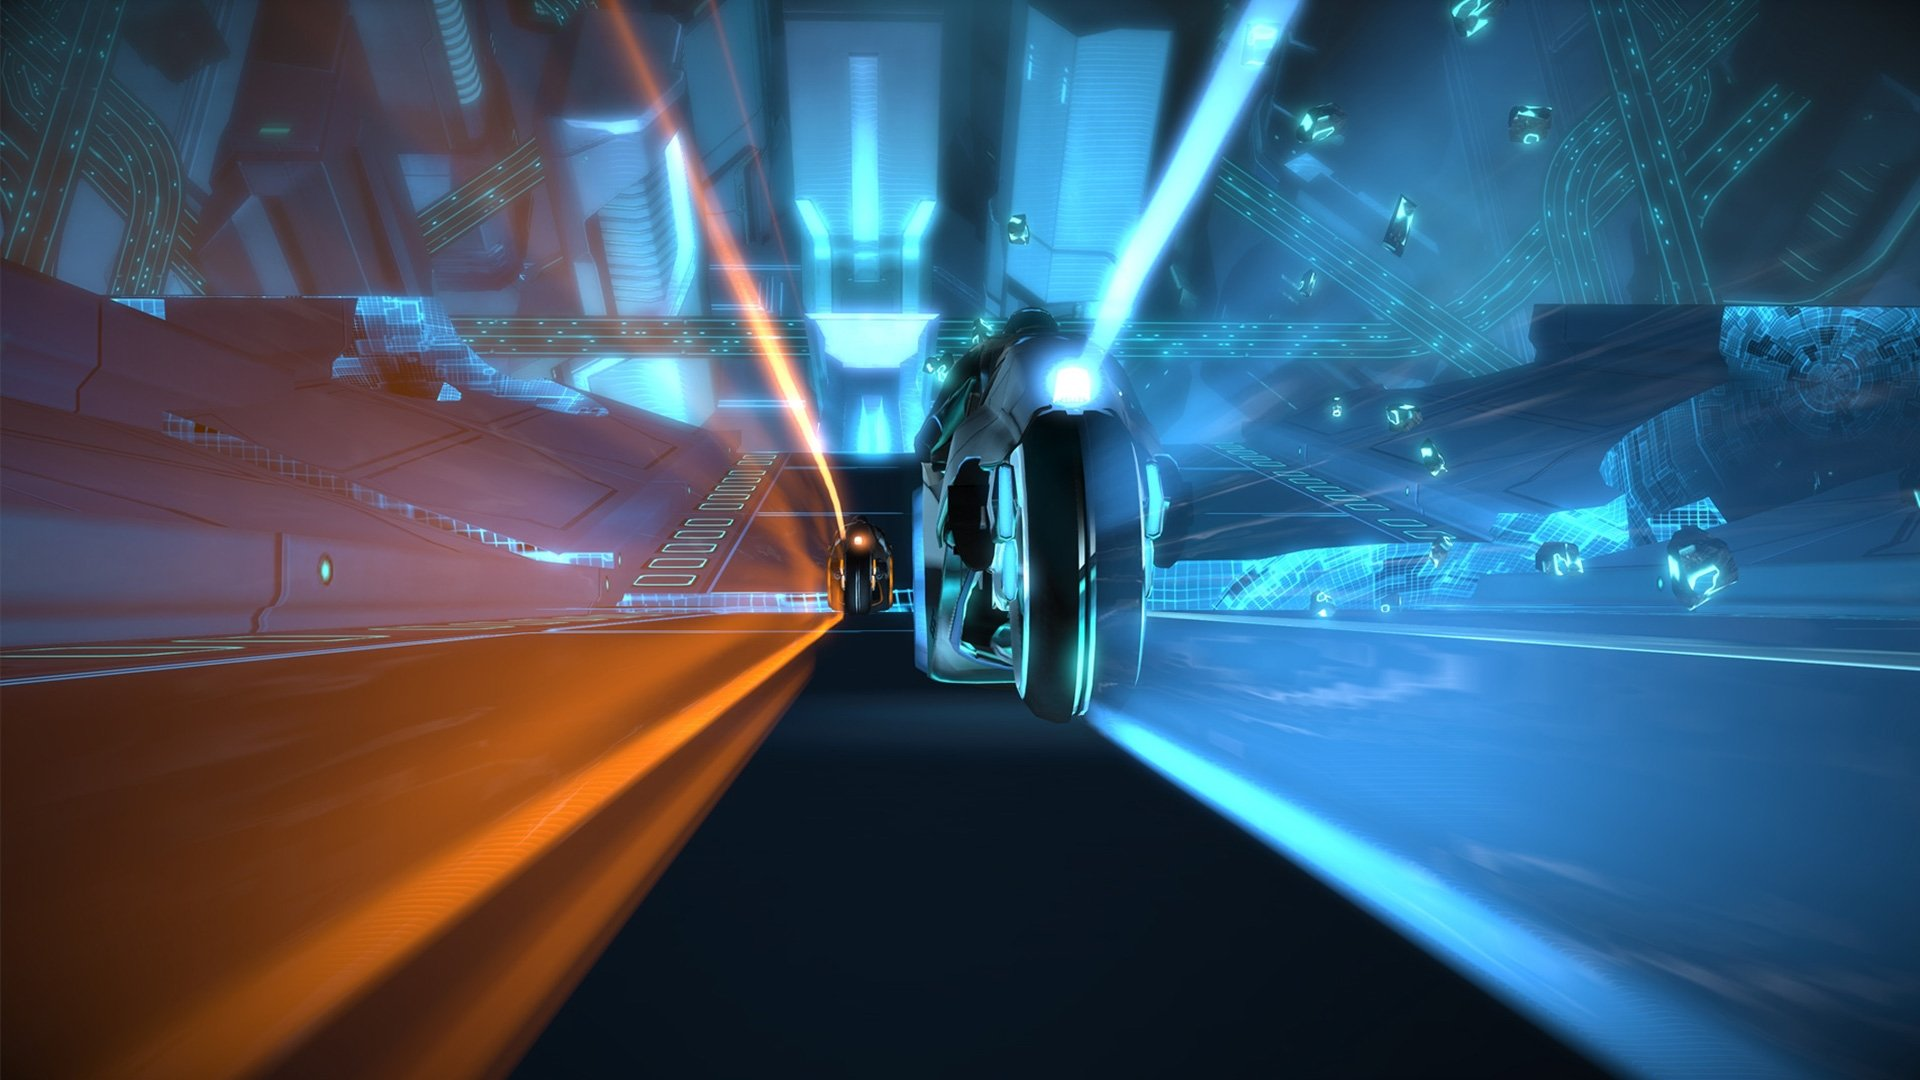 Tron Wallpaper Download